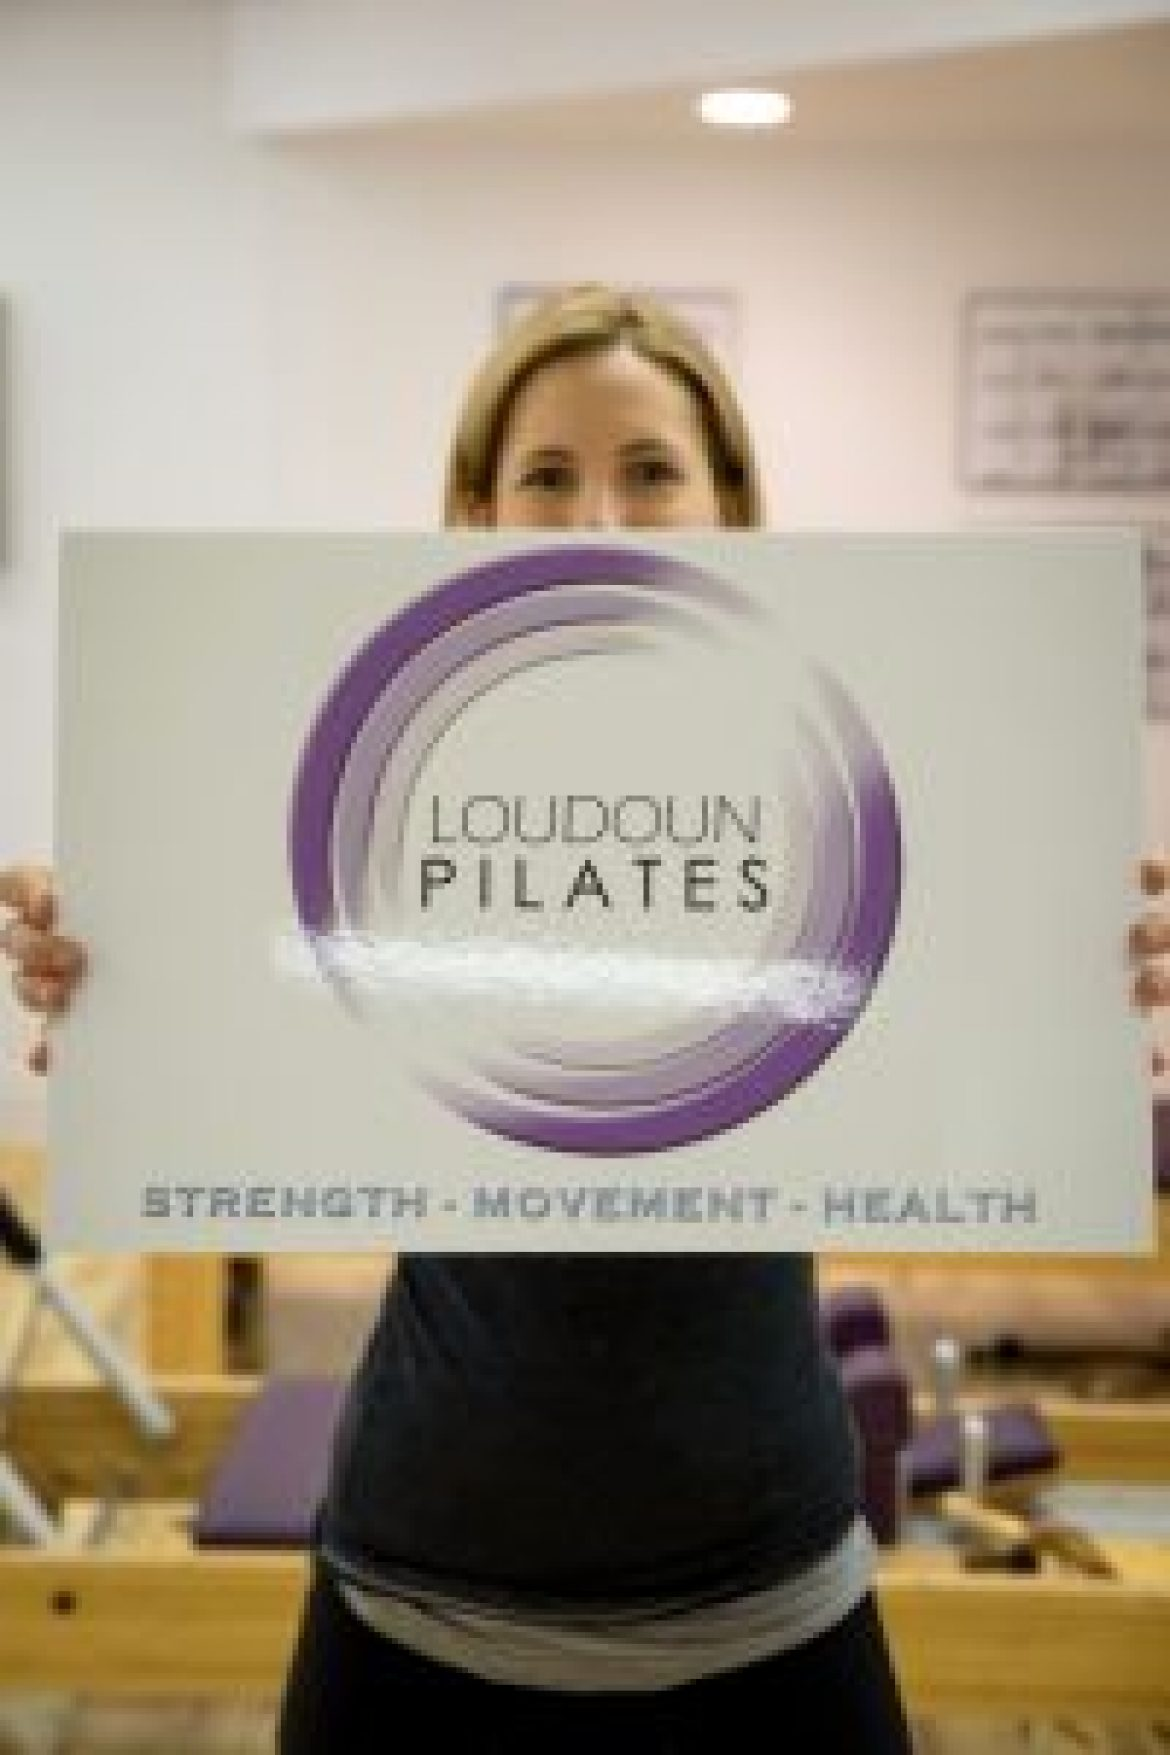 STRENGTH, MOVEMENT, HEALTH: A Pilates Approach to Wellness